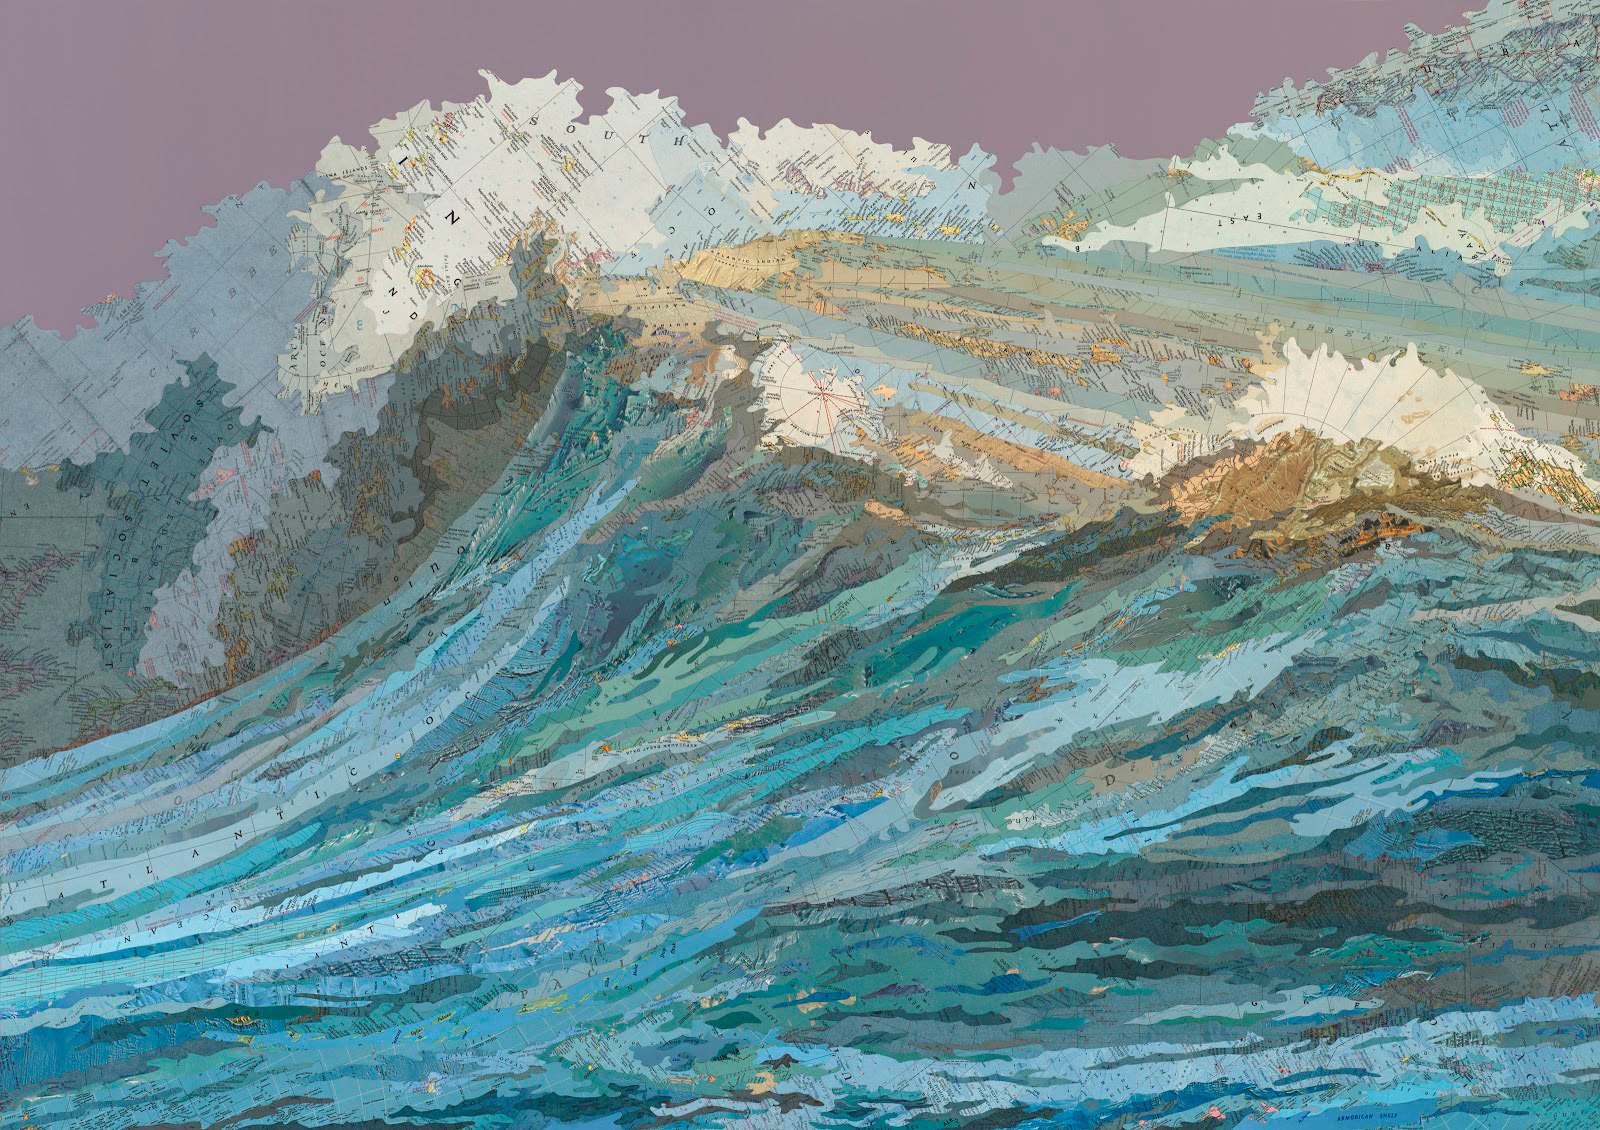 'The Rachel's Wave,' 2011, inlaid maps and acrylic on aluminum panel. Click on it for a larger version.